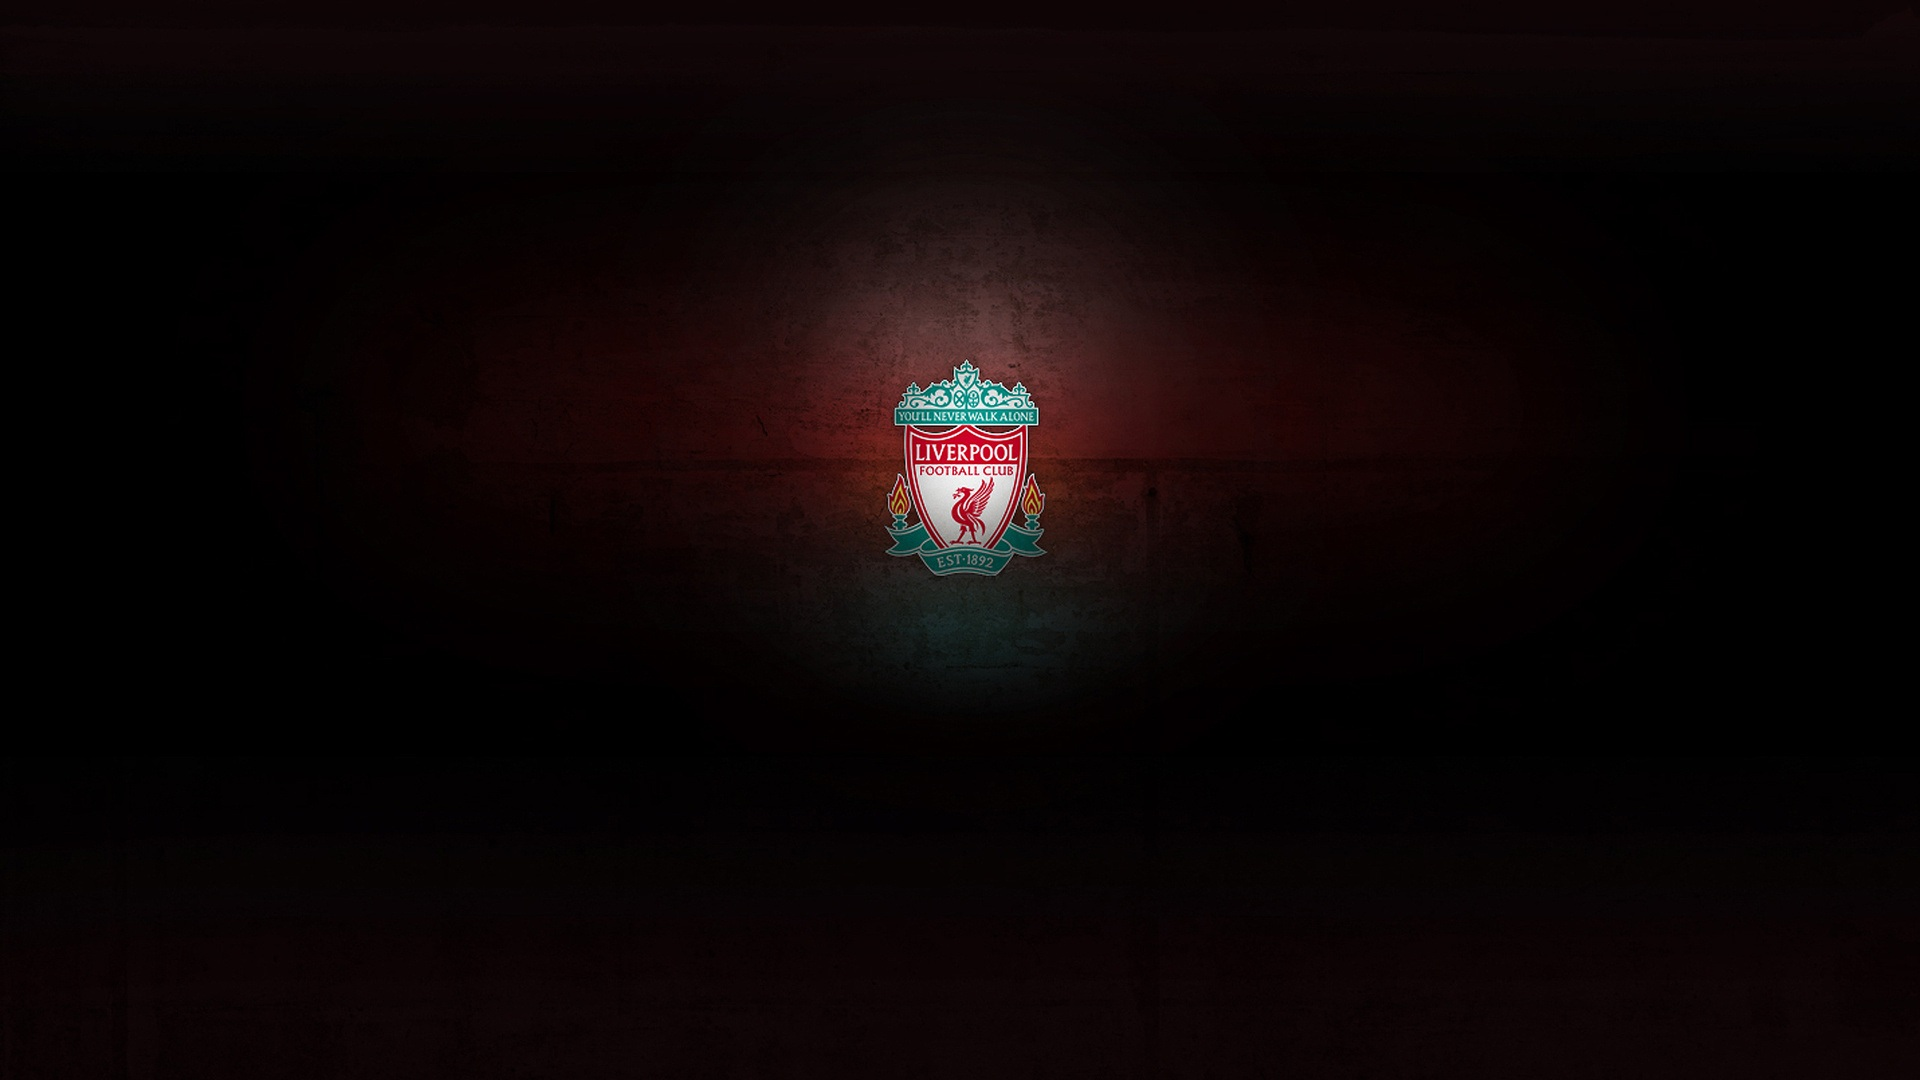 Liverpool Wallpapers HD A22